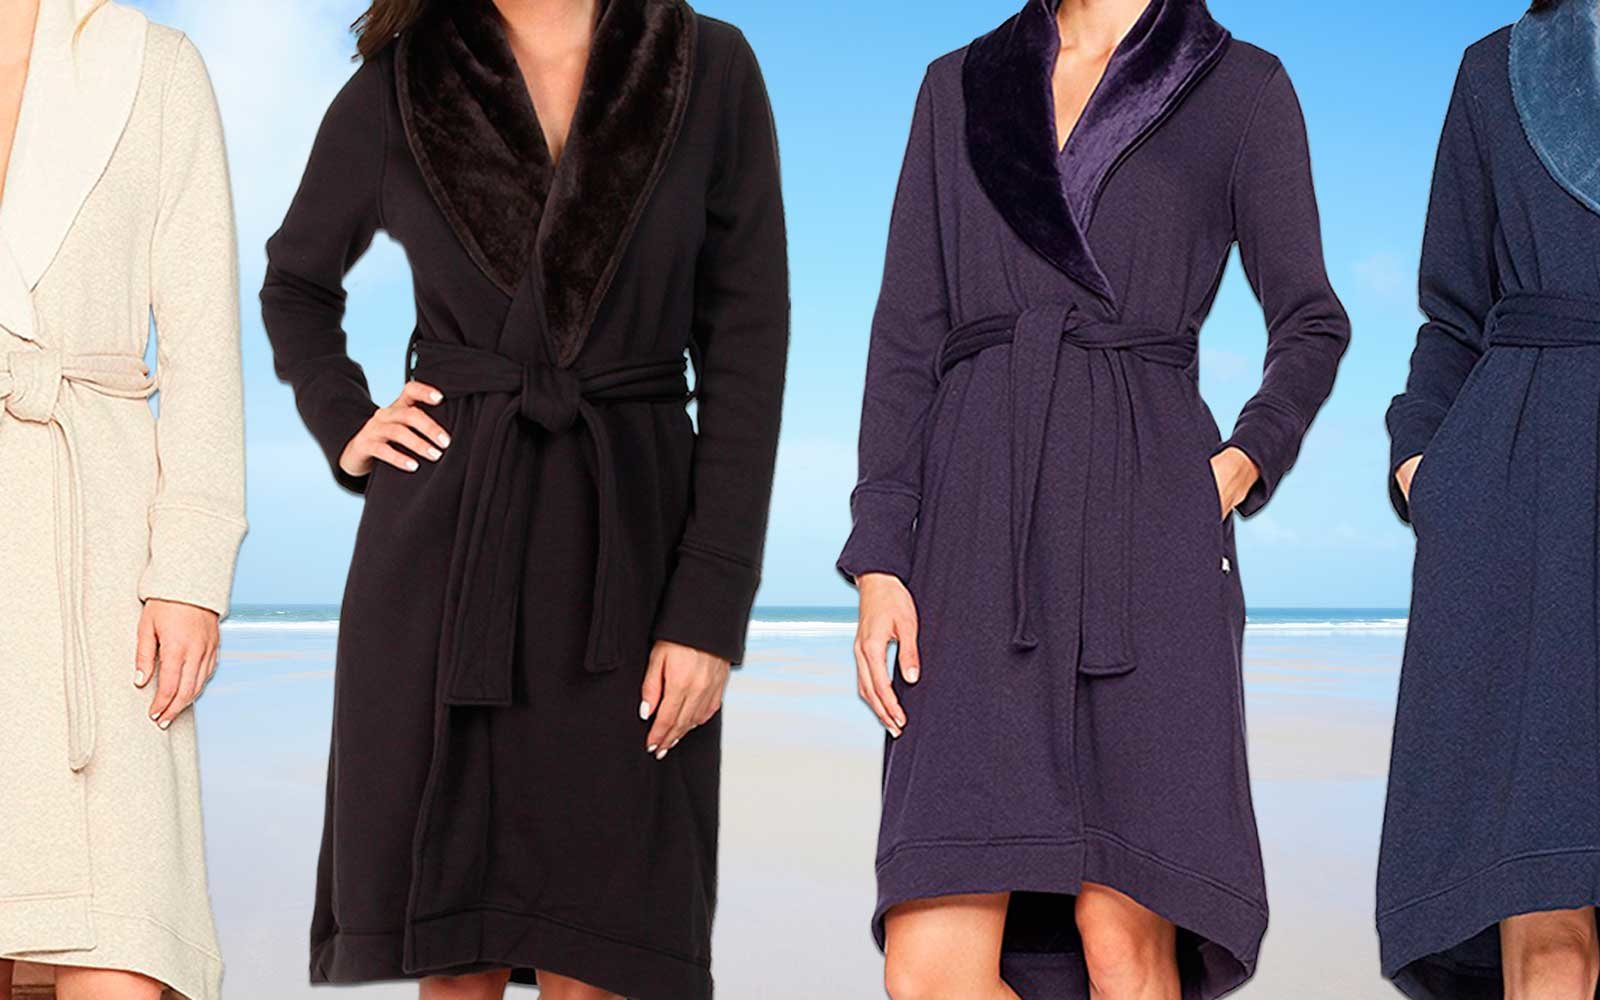 Ugg's Women's Bathrobe